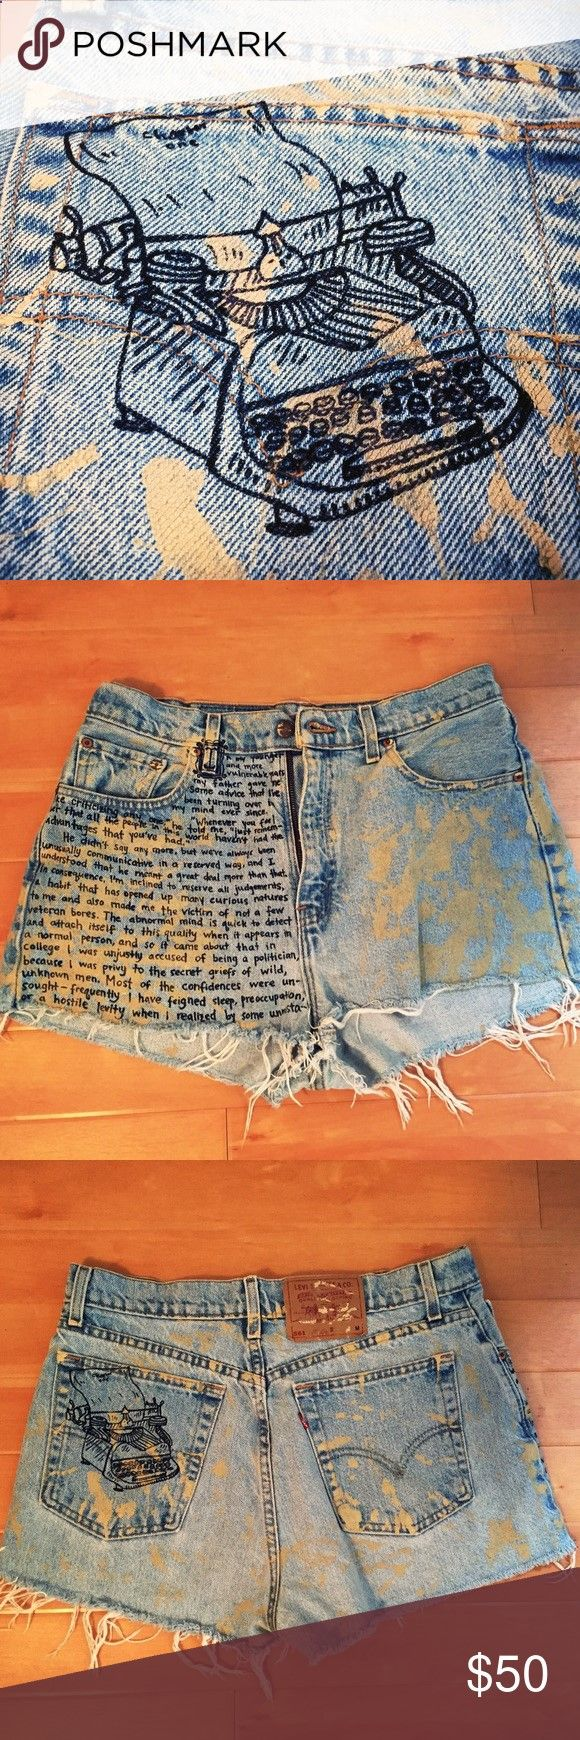 How To Wear Belts Great Gatsby Retro Cutoff Shorts | One of a Kind Unique and original distressed jean shorts. After my sister discovered a pair of parchment-colored paint-covered jeans in the thrift store, we chopped them and hand-distressed the edges. I then added a typewriter to the back pocket and the first part of chapter one to the front.... Could probably fit a size 2-8 depending on how you want to wear them (high-waisted and belted versus on the hips). Levis Shorts Jean Shorts ...